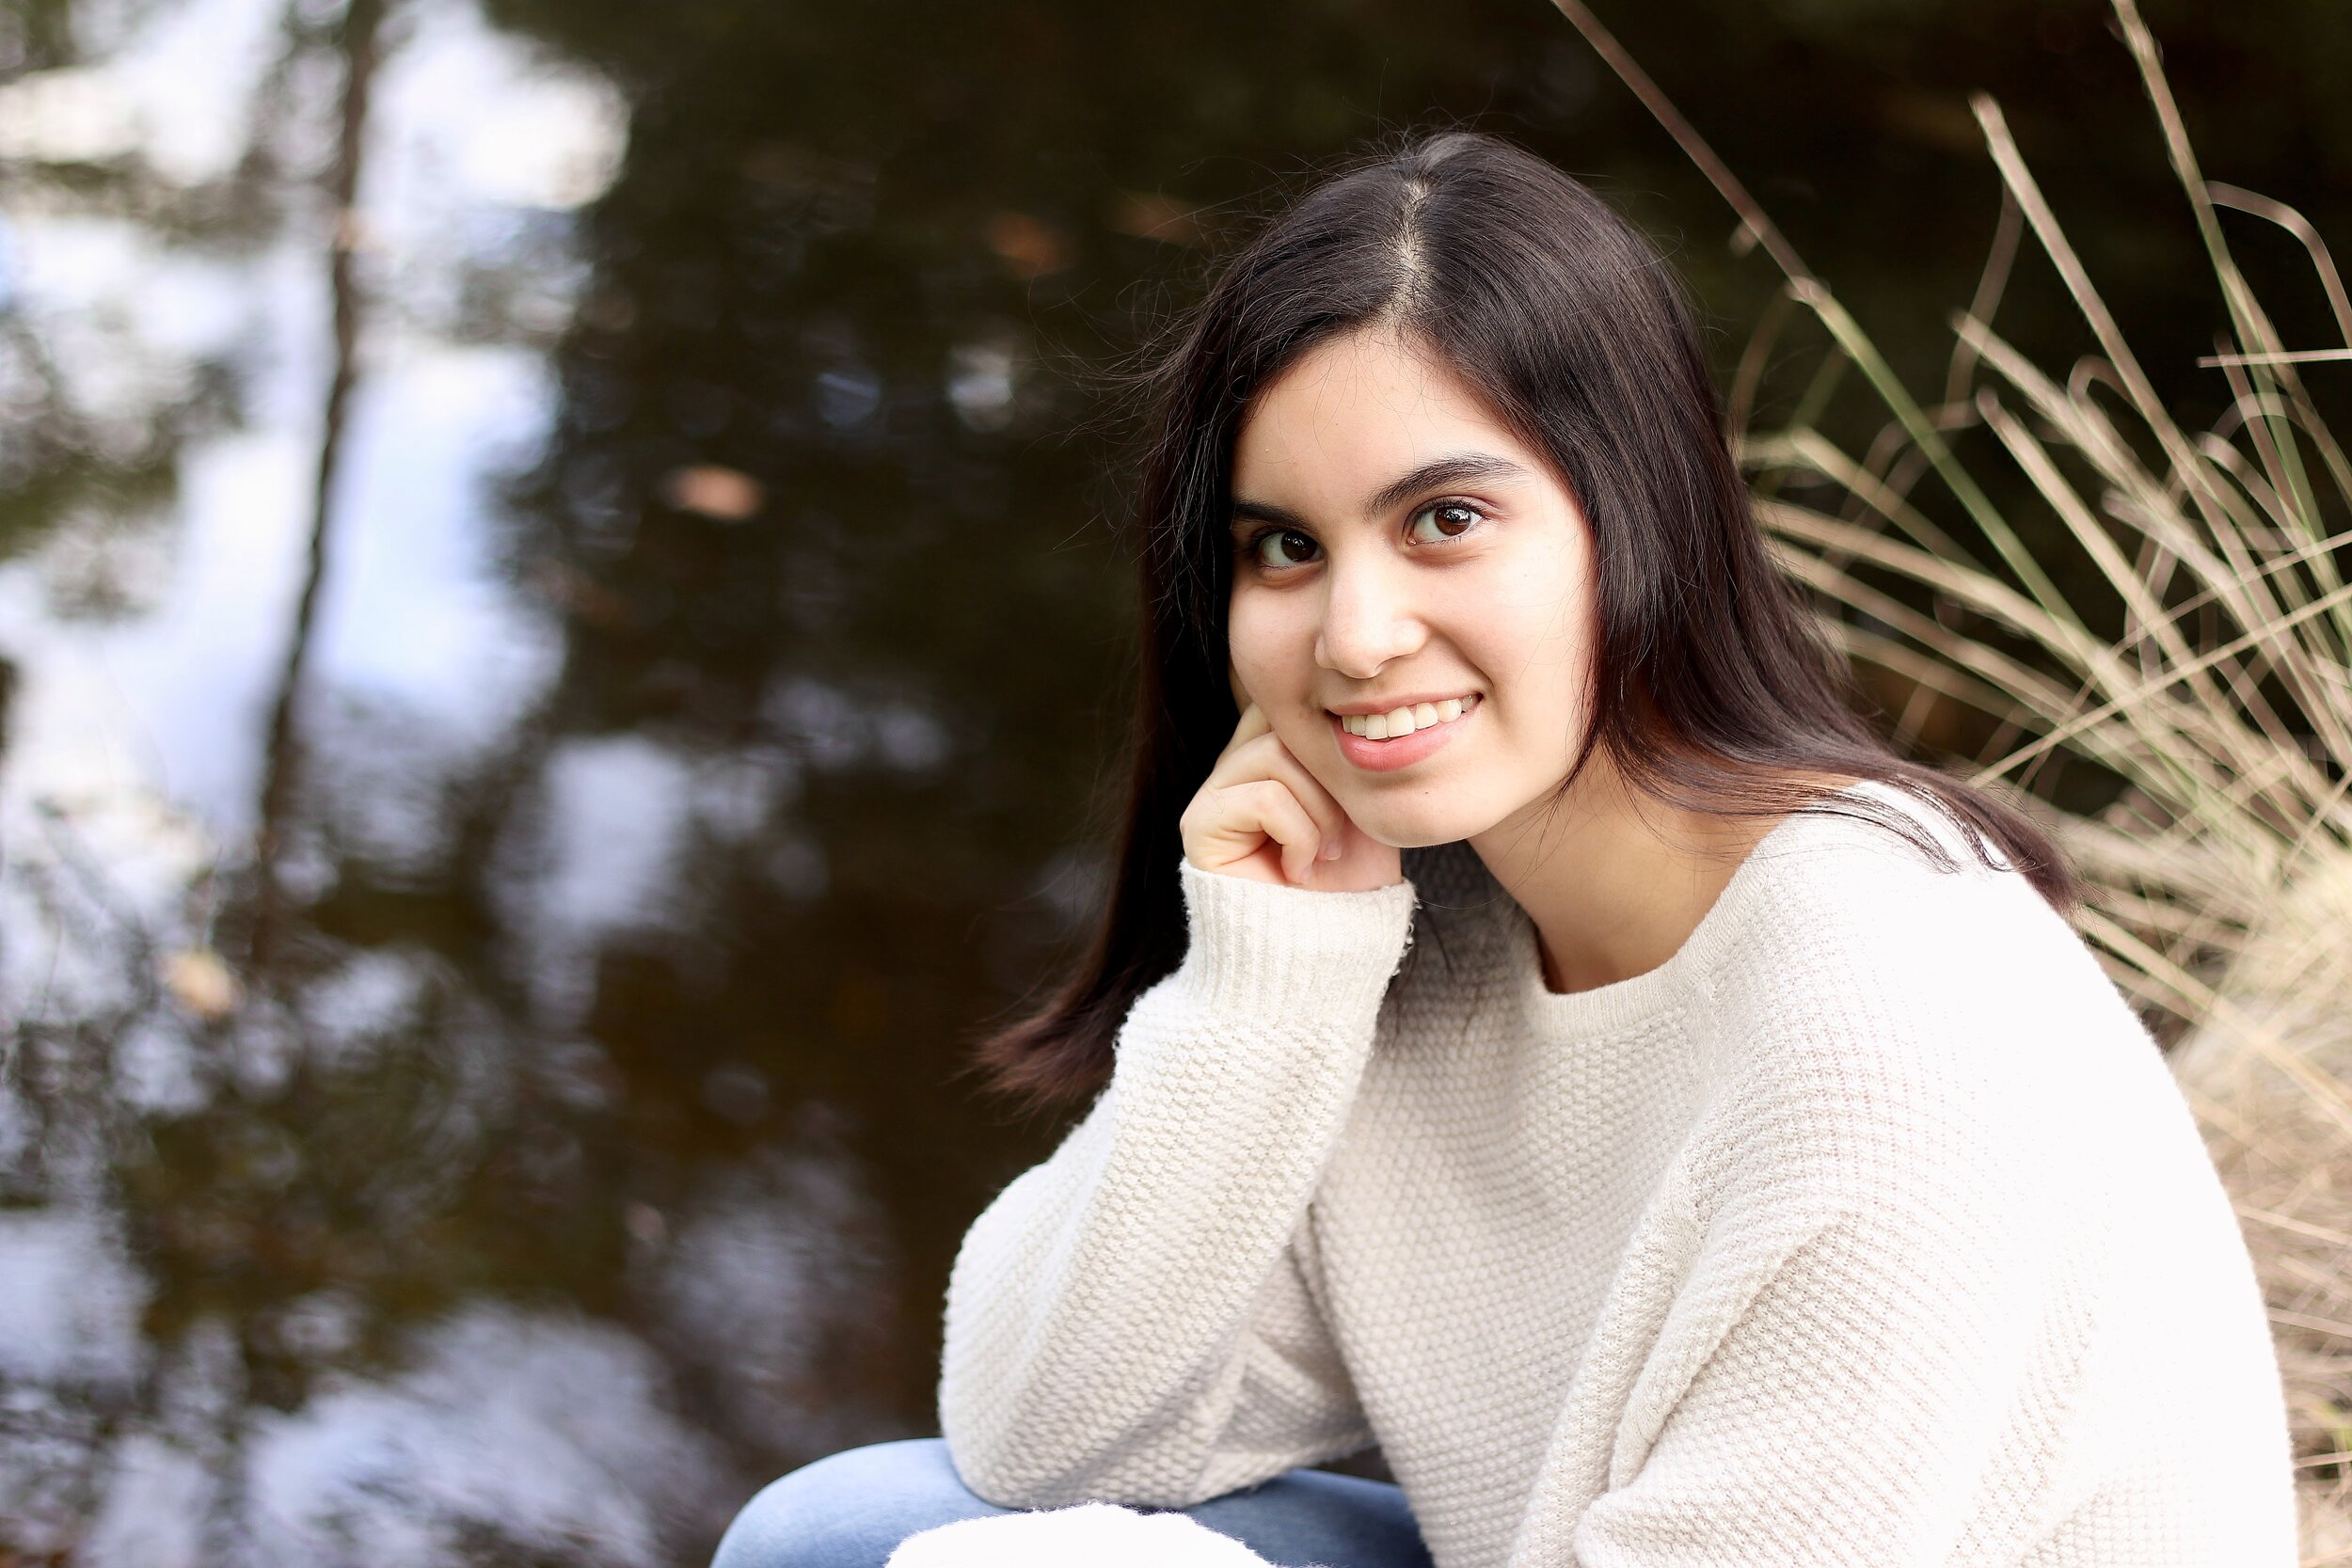 Carolina Larracilla - Carolina Larracilla is a sophomore at The Woodlands High School in Texas. Besides writing poetry, she spends her time reading, swimming and writing for the school newspaper, The Caledonian. She plans to pursue a major in Journalism, alongside a career in creative writing.